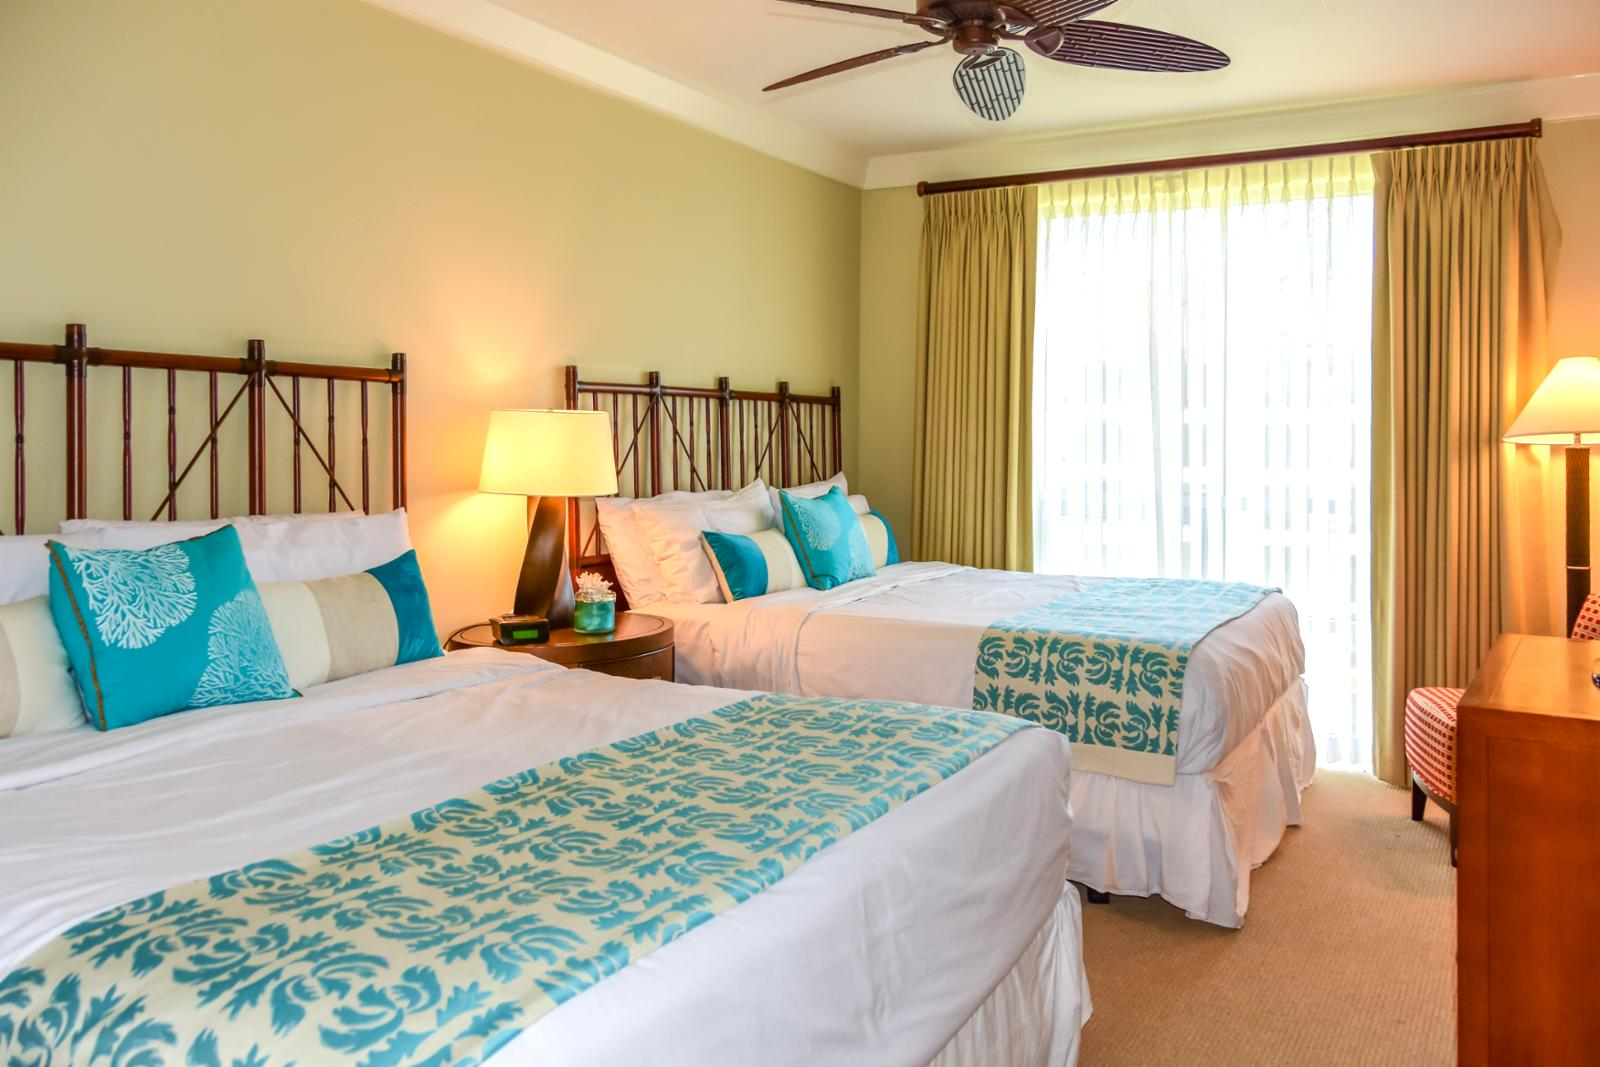 Equipped with ceiling fans perfect for ocean breezes